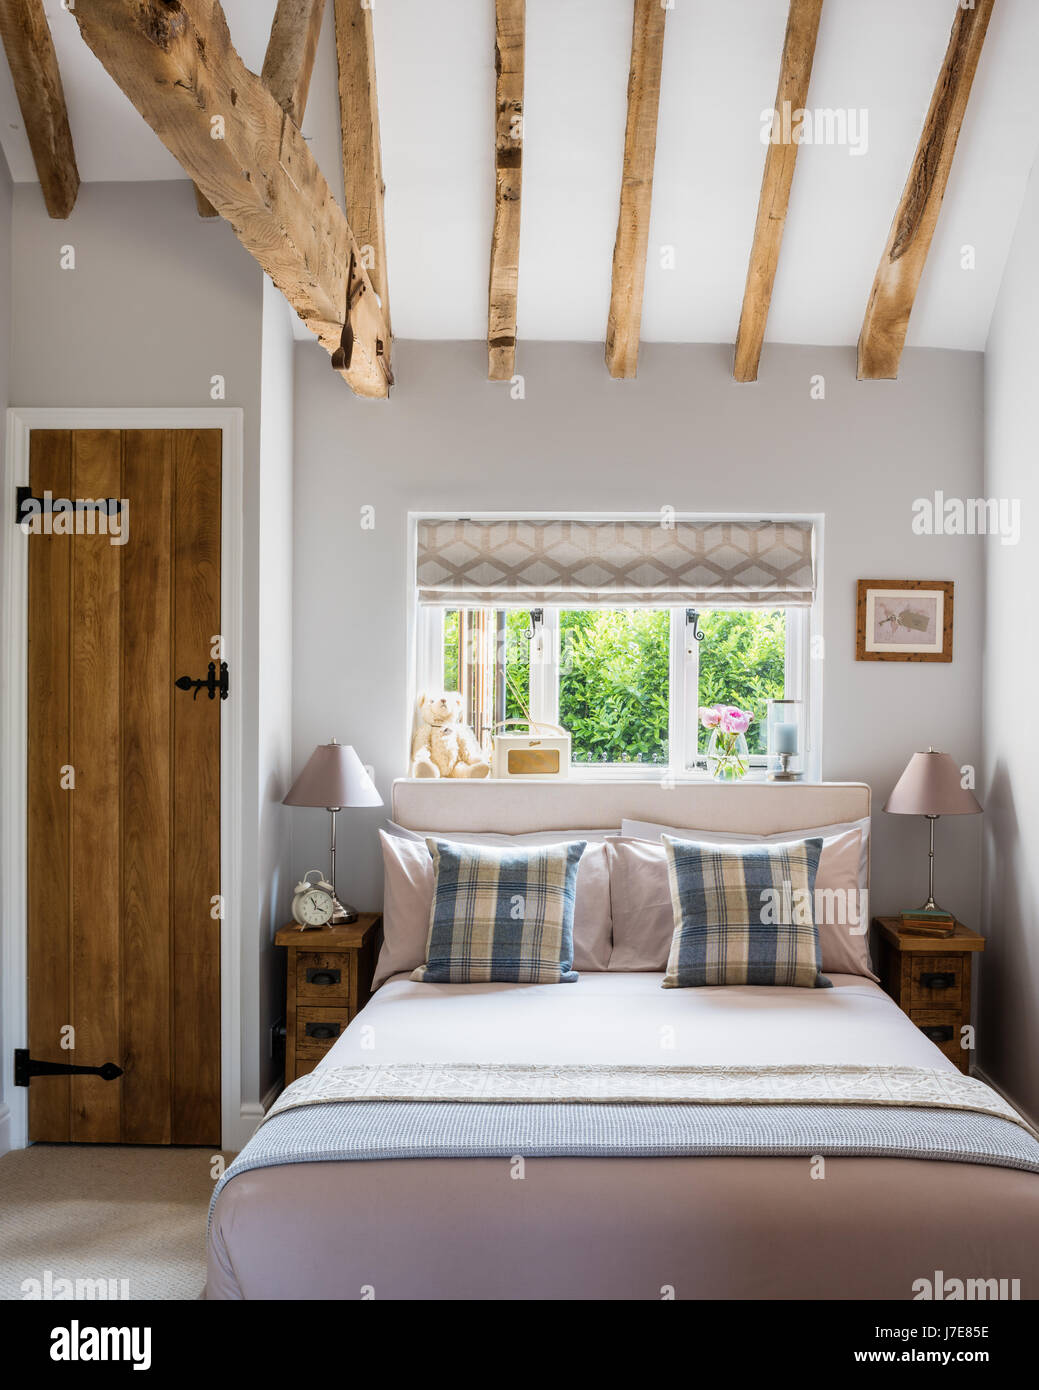 Cosy bedroom with wooden ceiling beams and narrow plank bedside